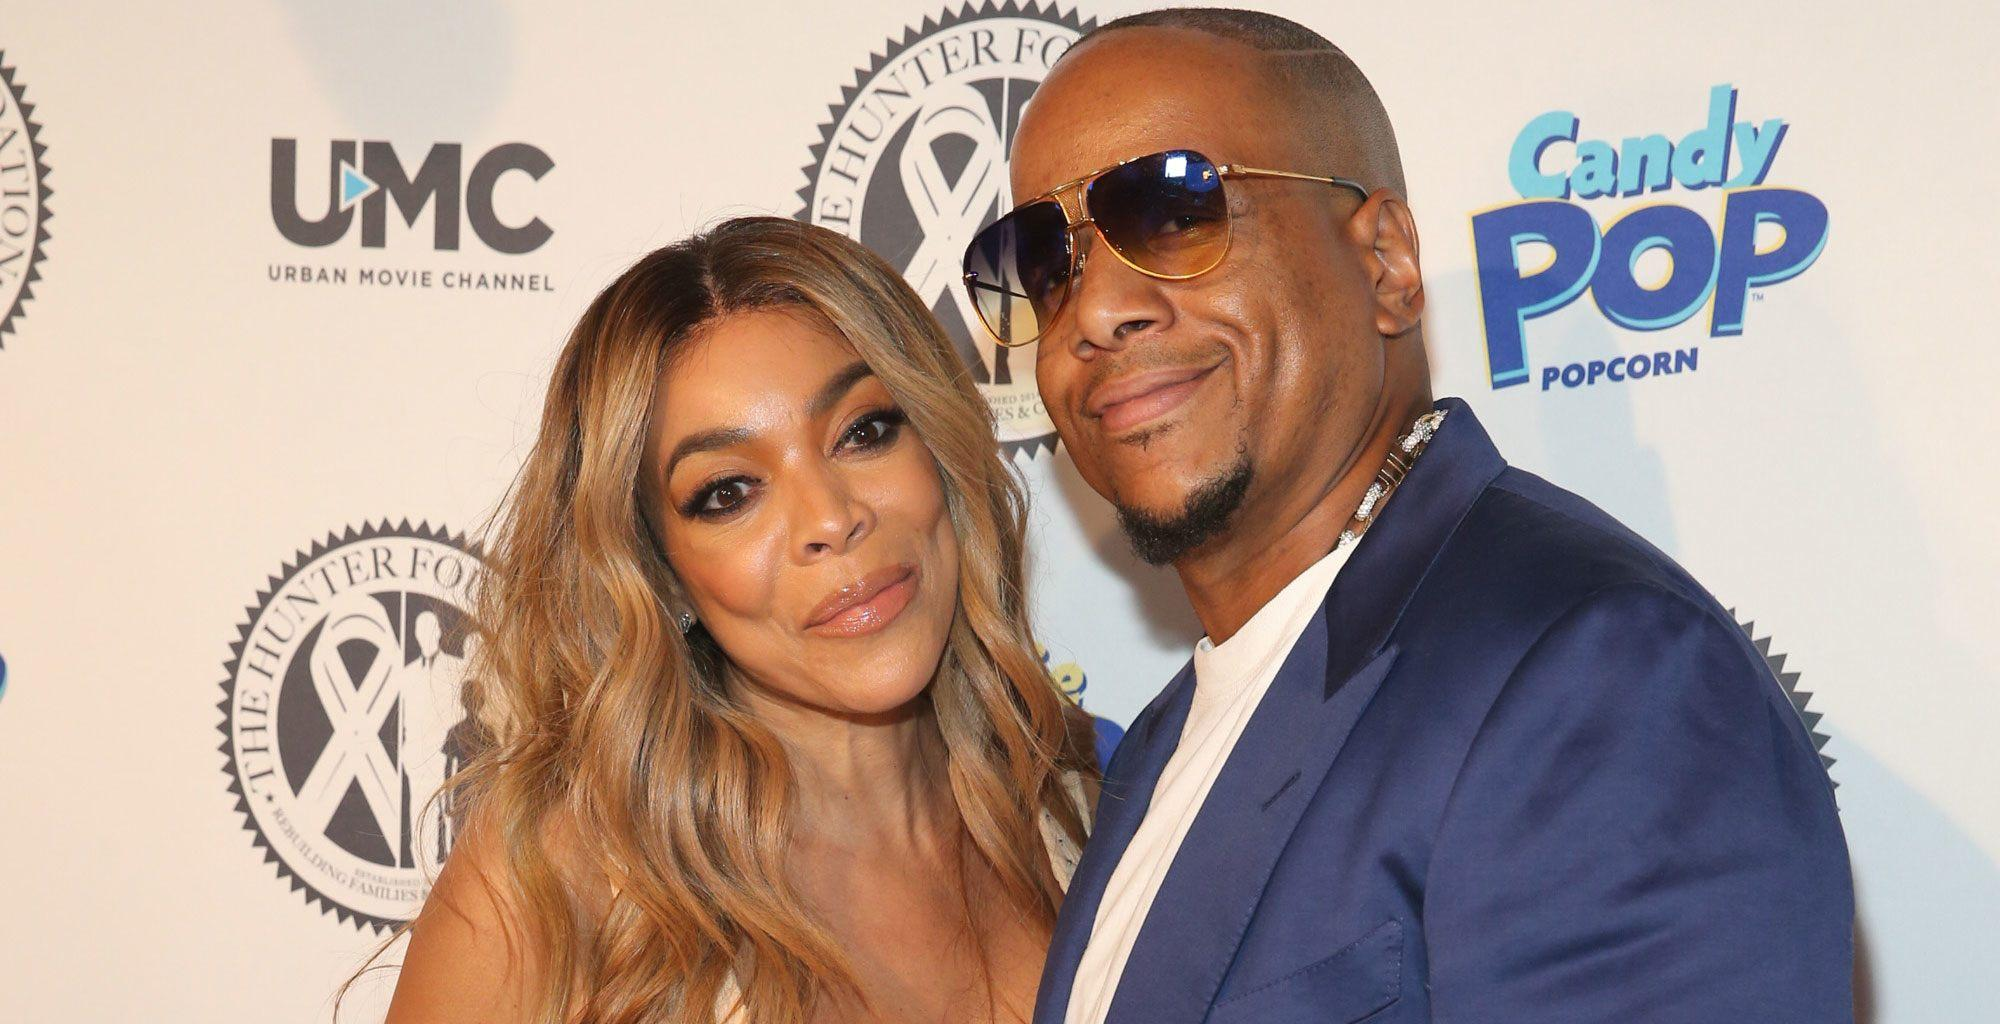 Wendy Williams' Ex Asks For Spousal And Child Support For 18-Year-Old Son Amid Their Divorce